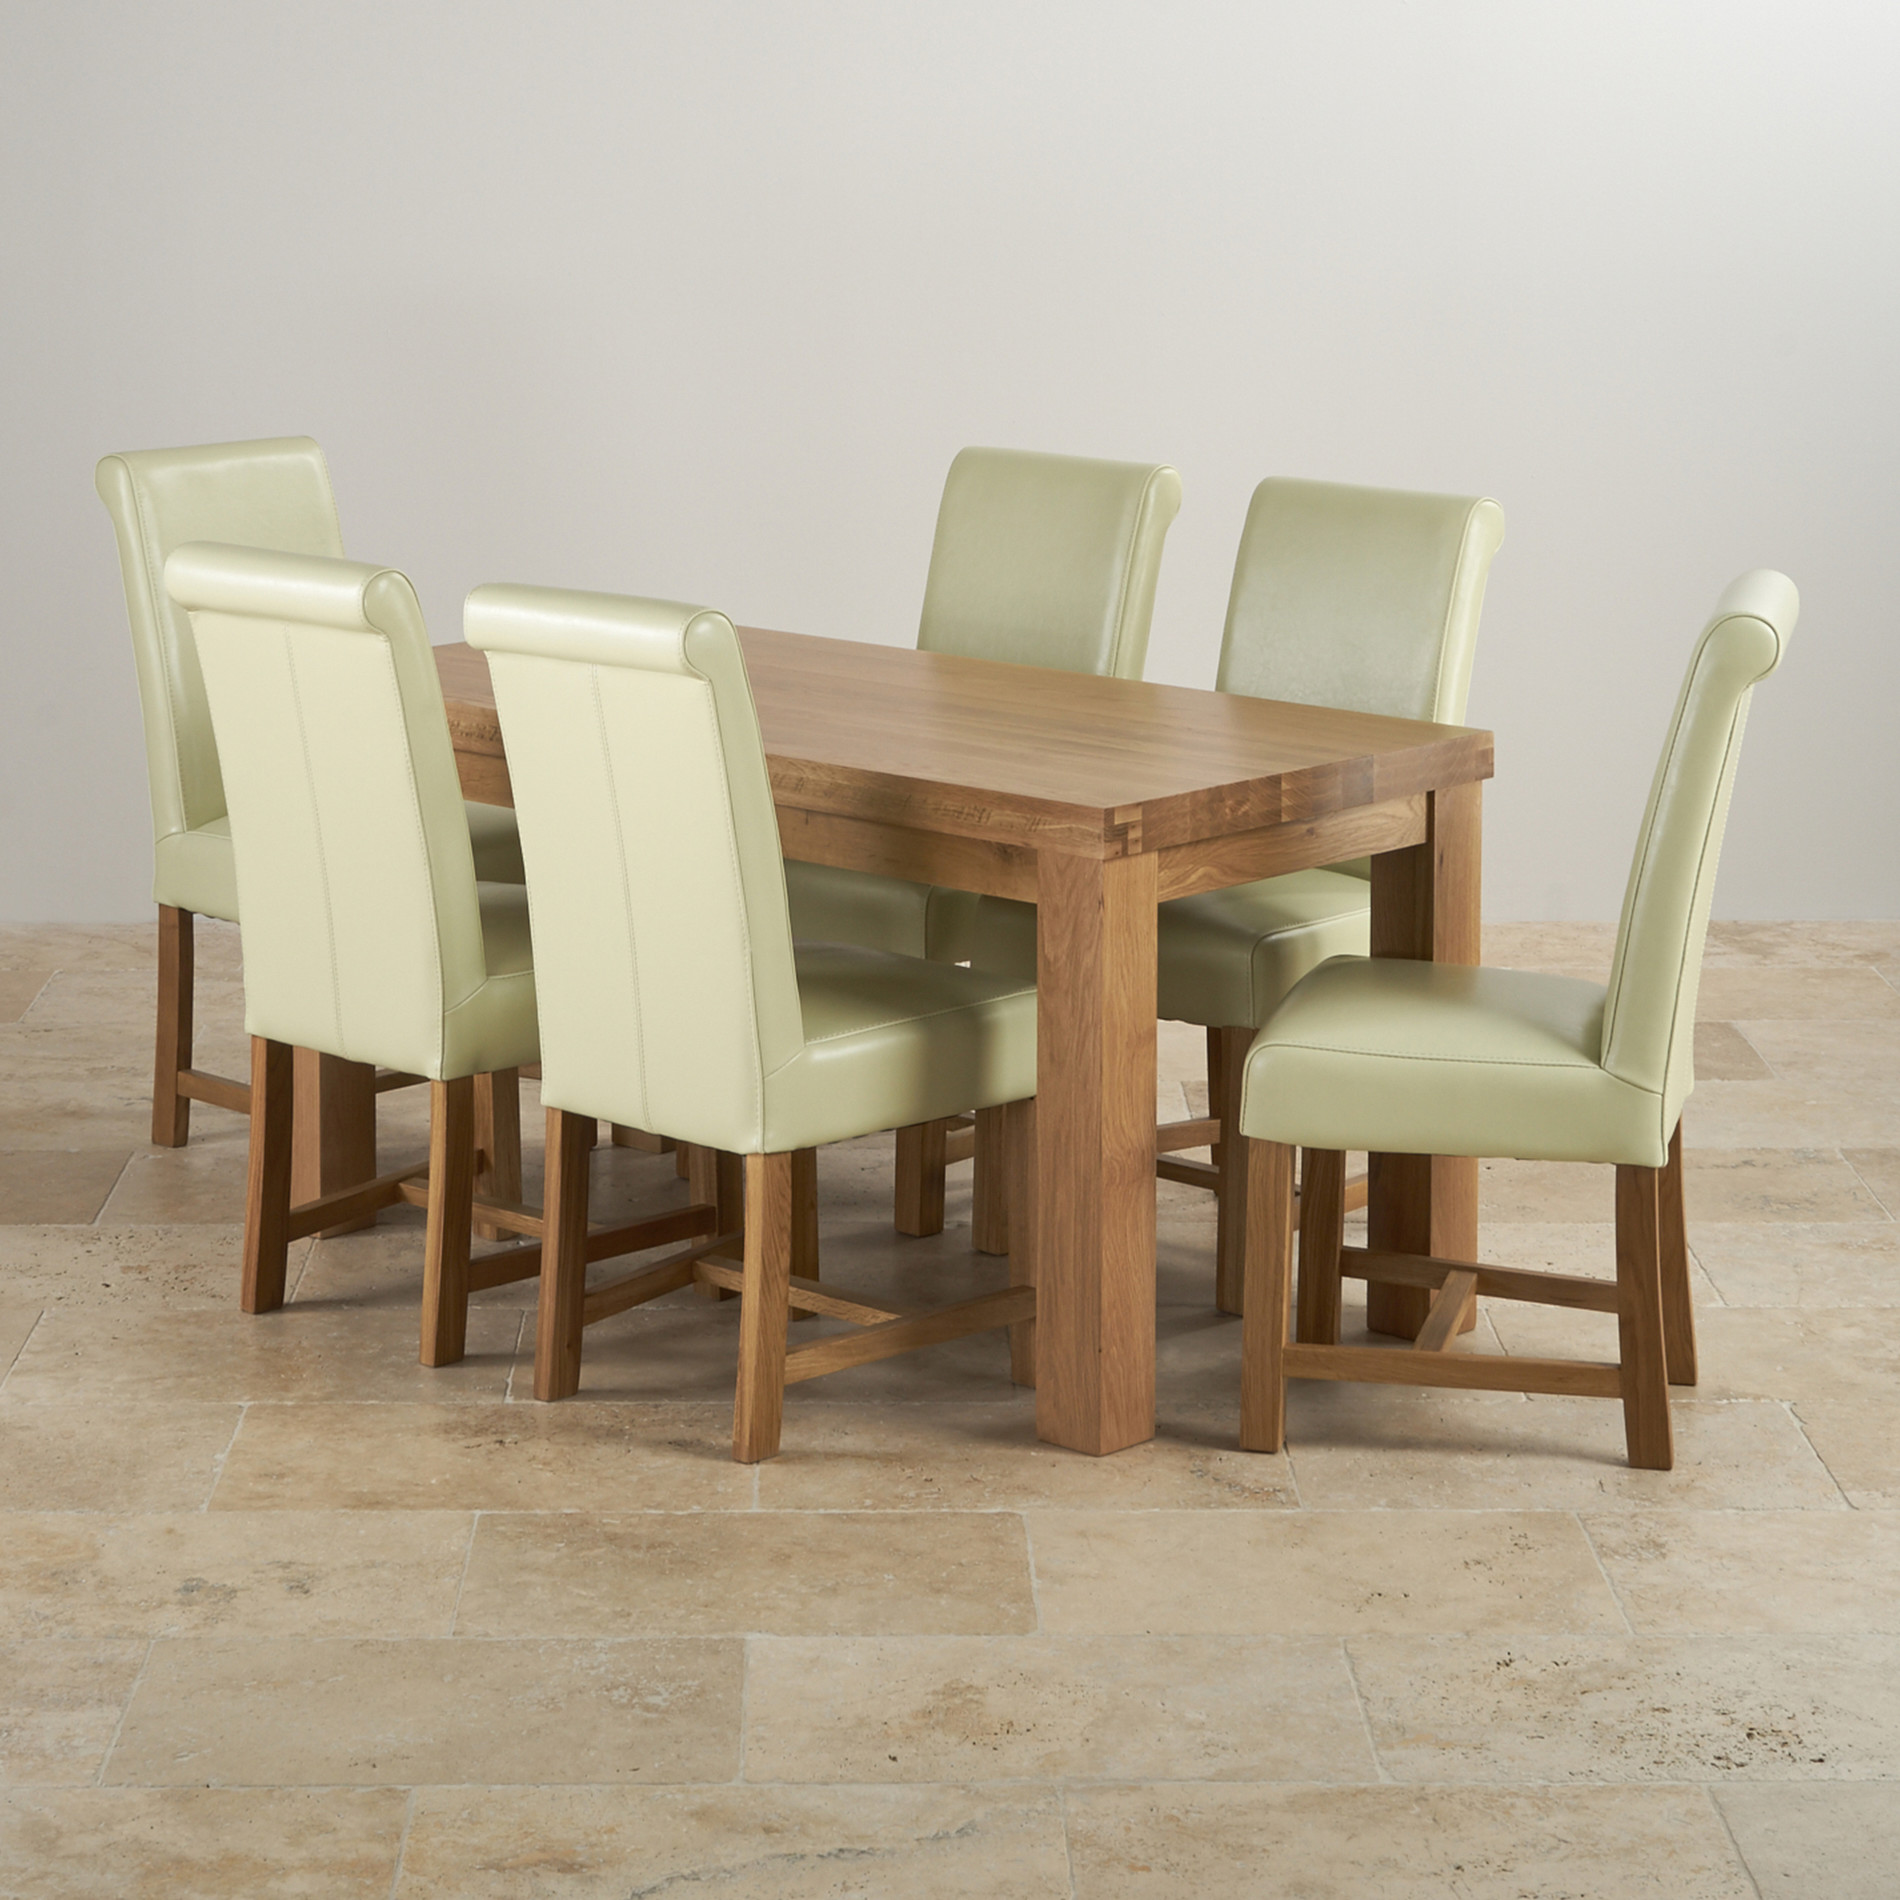 Leather Dining Set: Contemporary Dining Set In Oak: Table + 6 Cream Leather Chairs